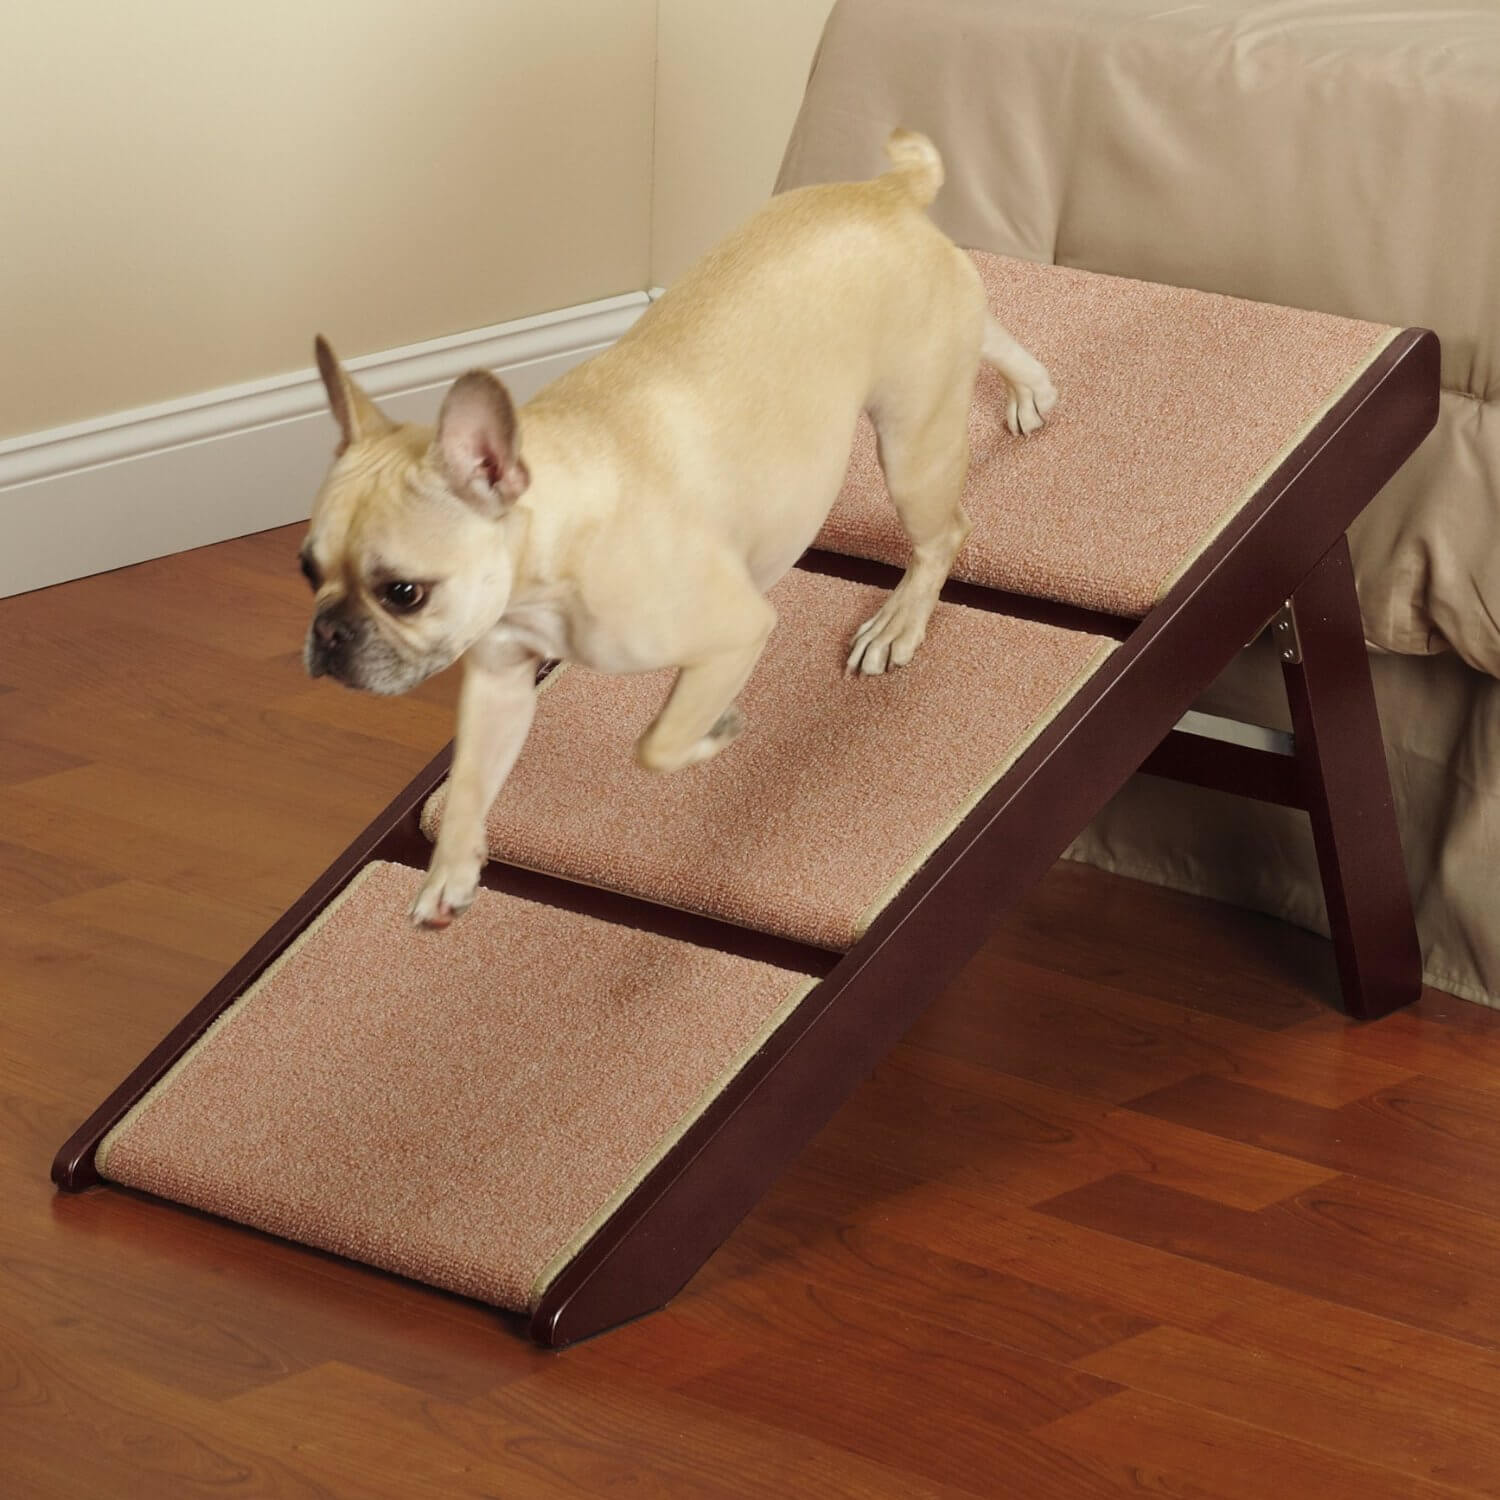 Pet Studio Dog Stairs - Converted Into a Ramp